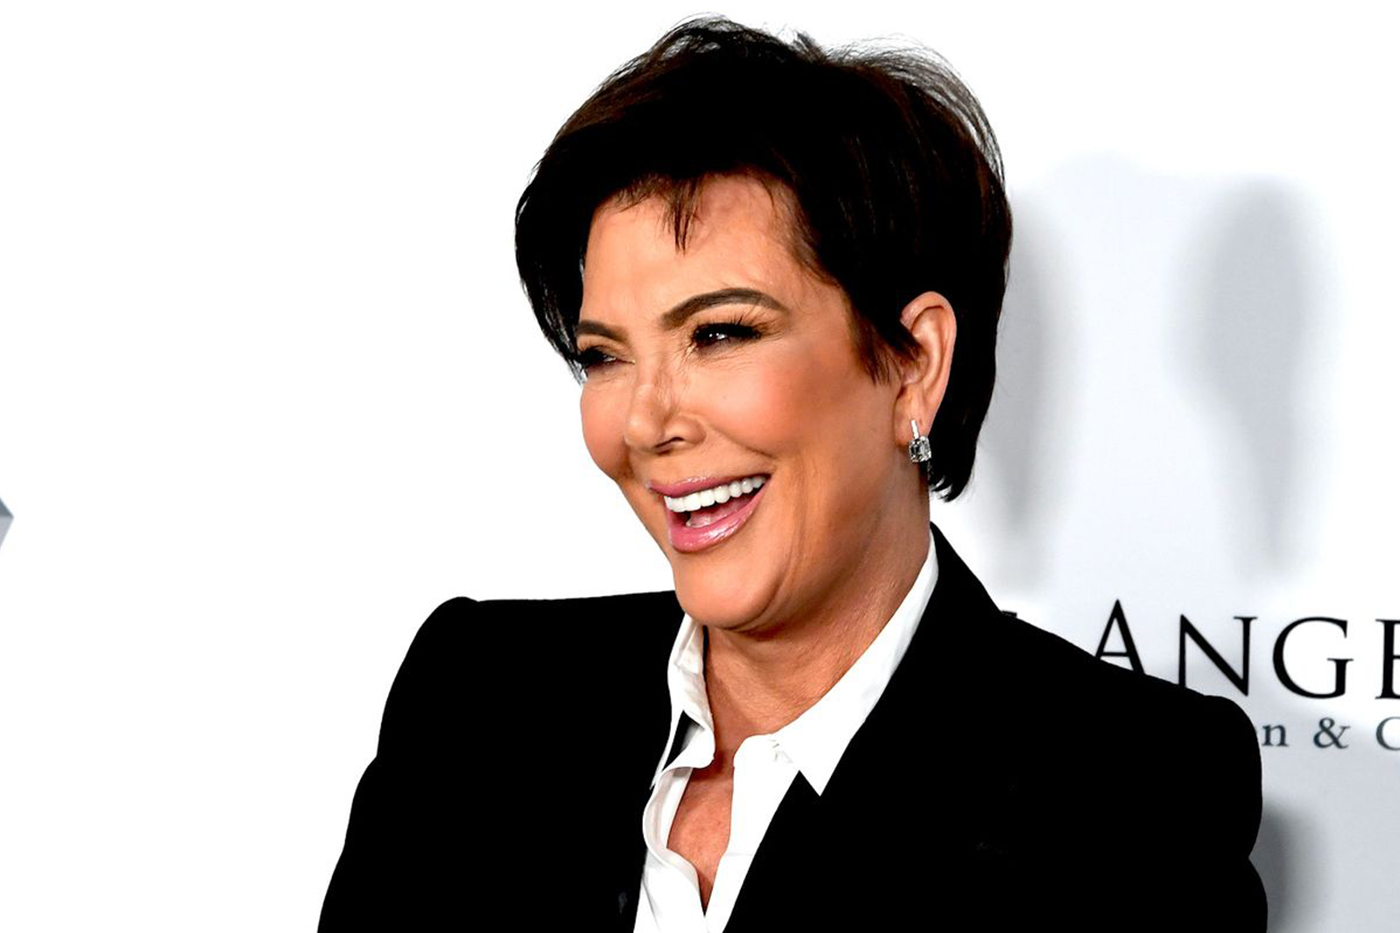 Kris Jenner is all set to launch her new skincare brand